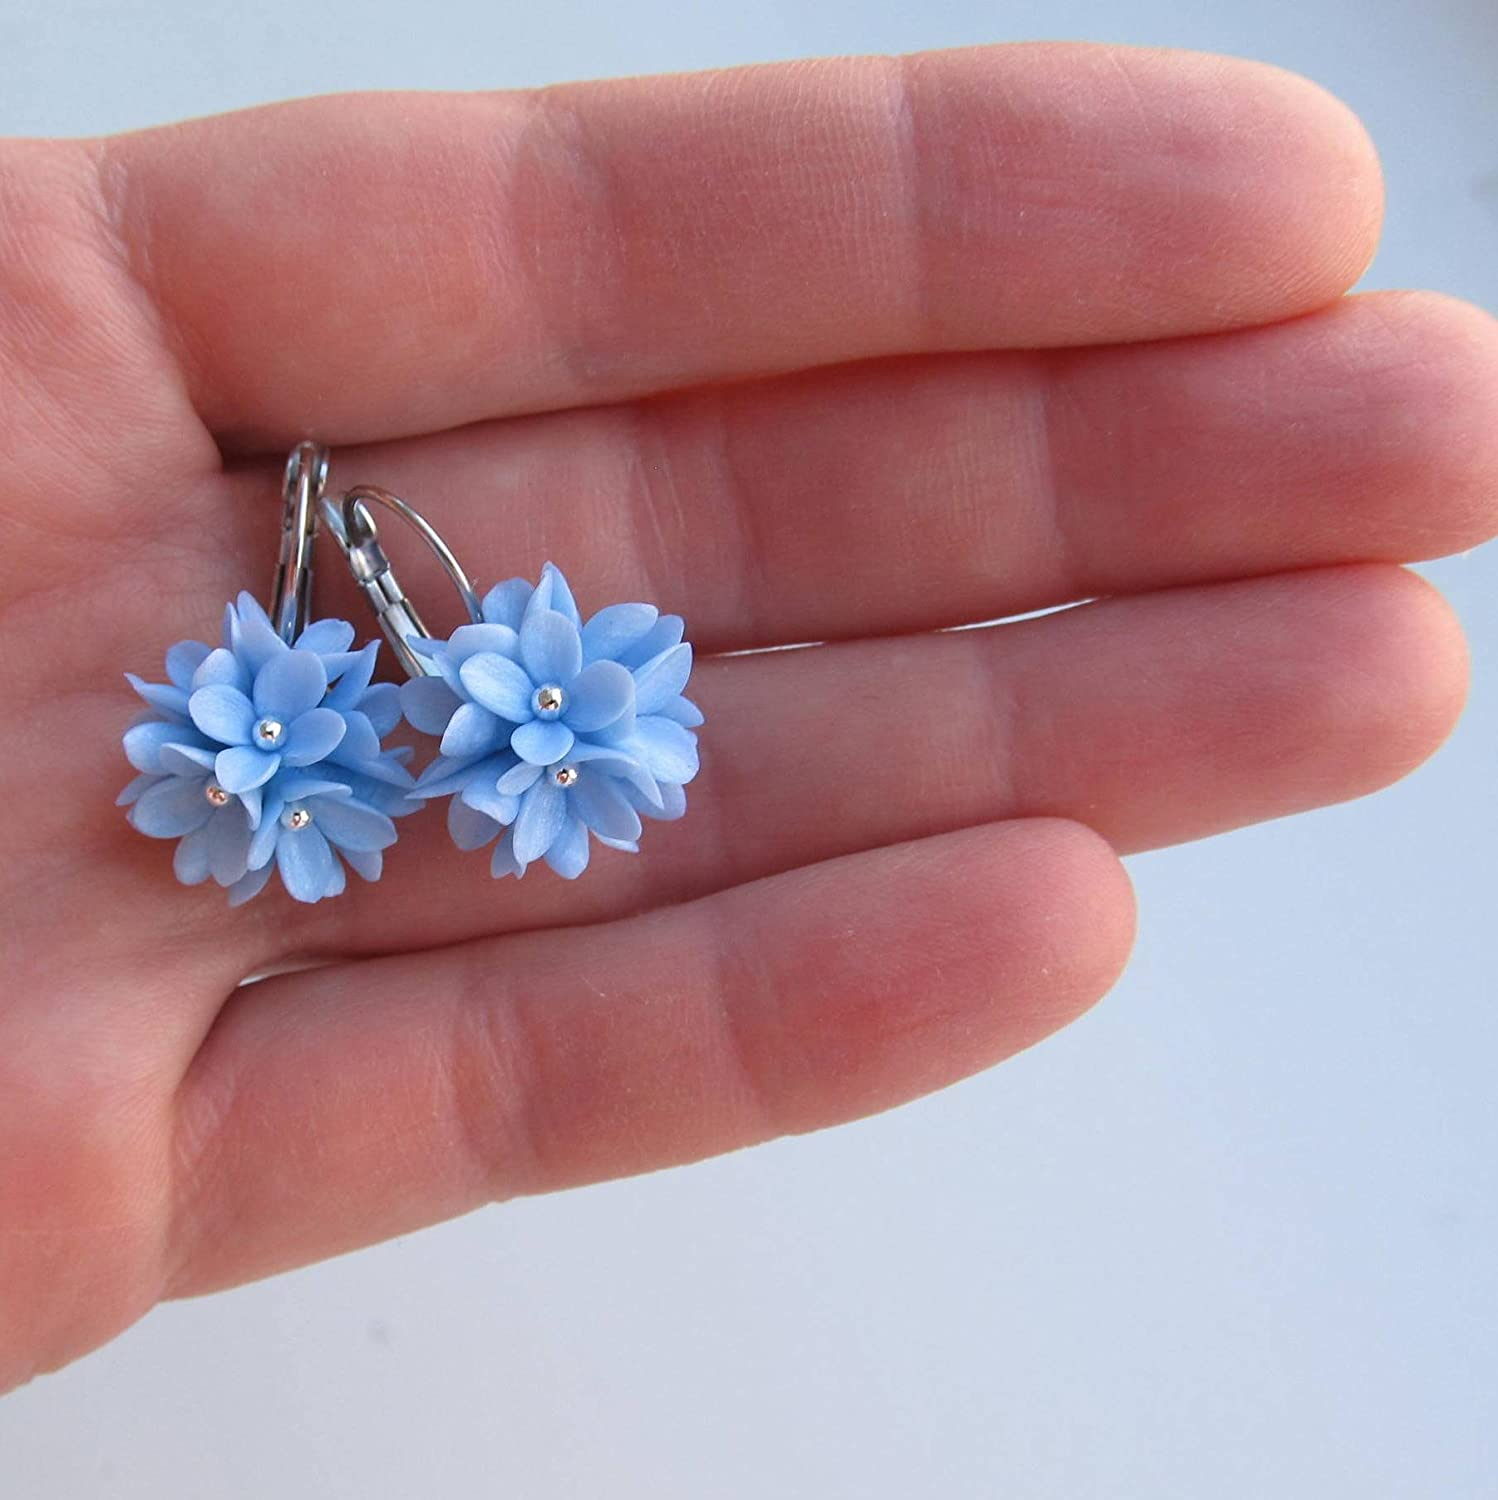 Handmade Sky blue flower dangle earrings Hypoallergenic Surgical steel french lever back drops Silver colored Cluster clay jewelry